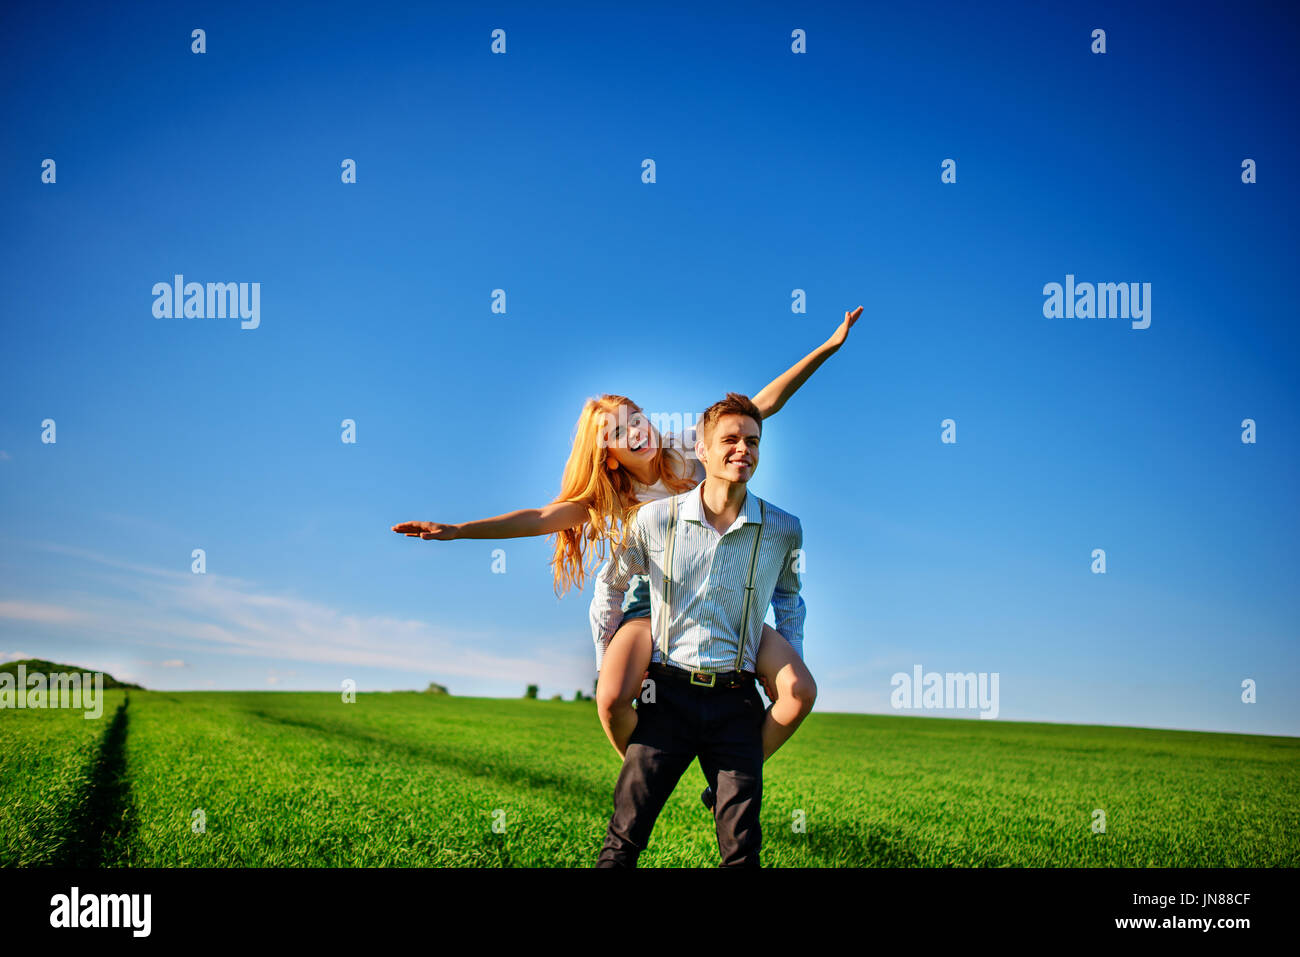 Smiling Man is holding on his back happy woman, who pulls out her arms and simulates a flight against the background Stock Photo